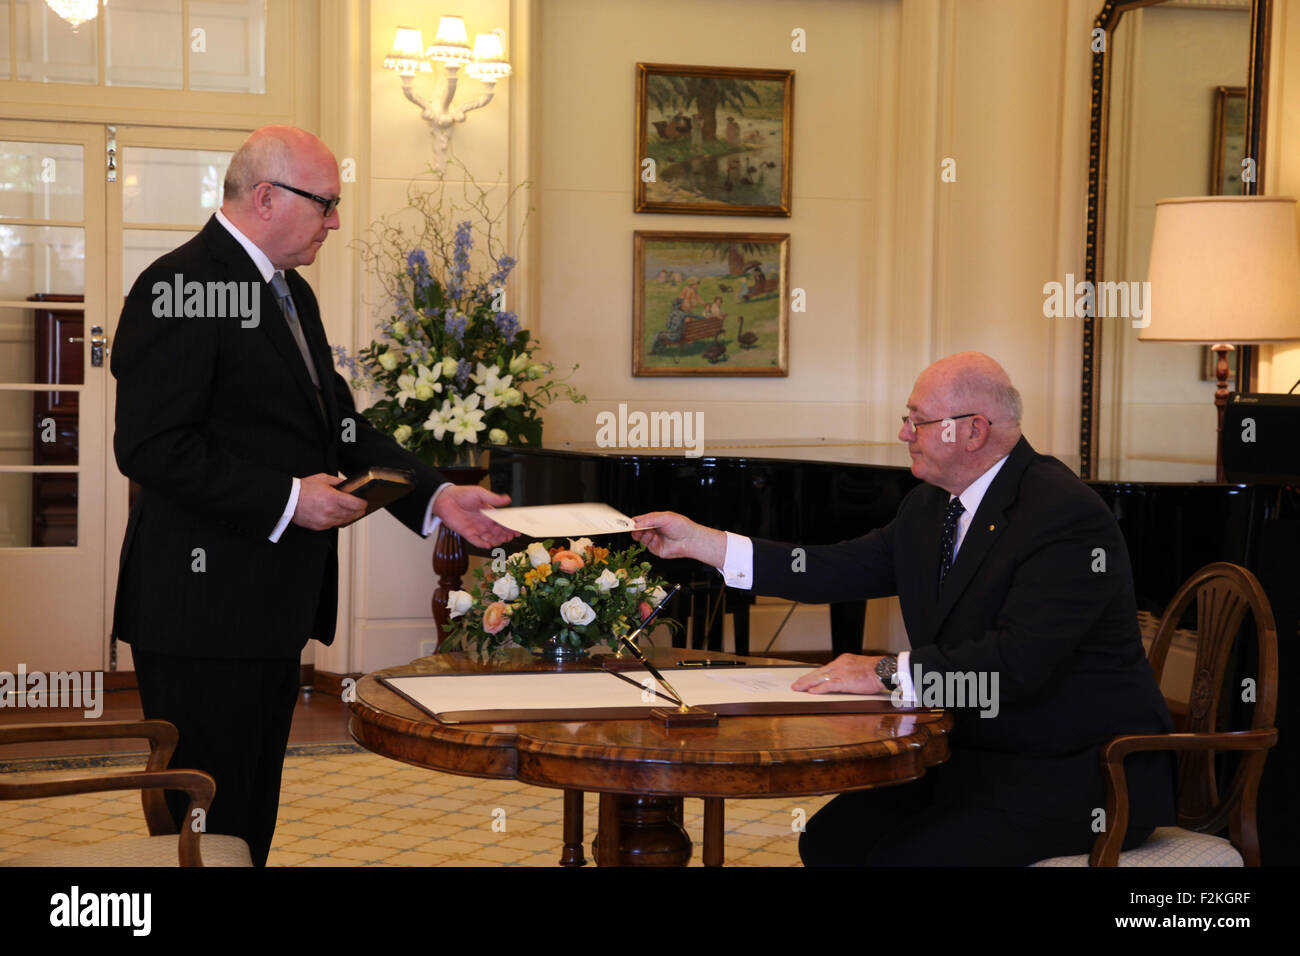 Canberra, Australia. 21st Sep, 2015. George Brandis (L) is sworn in as Attorney General by Governor General Sir - Stock Image